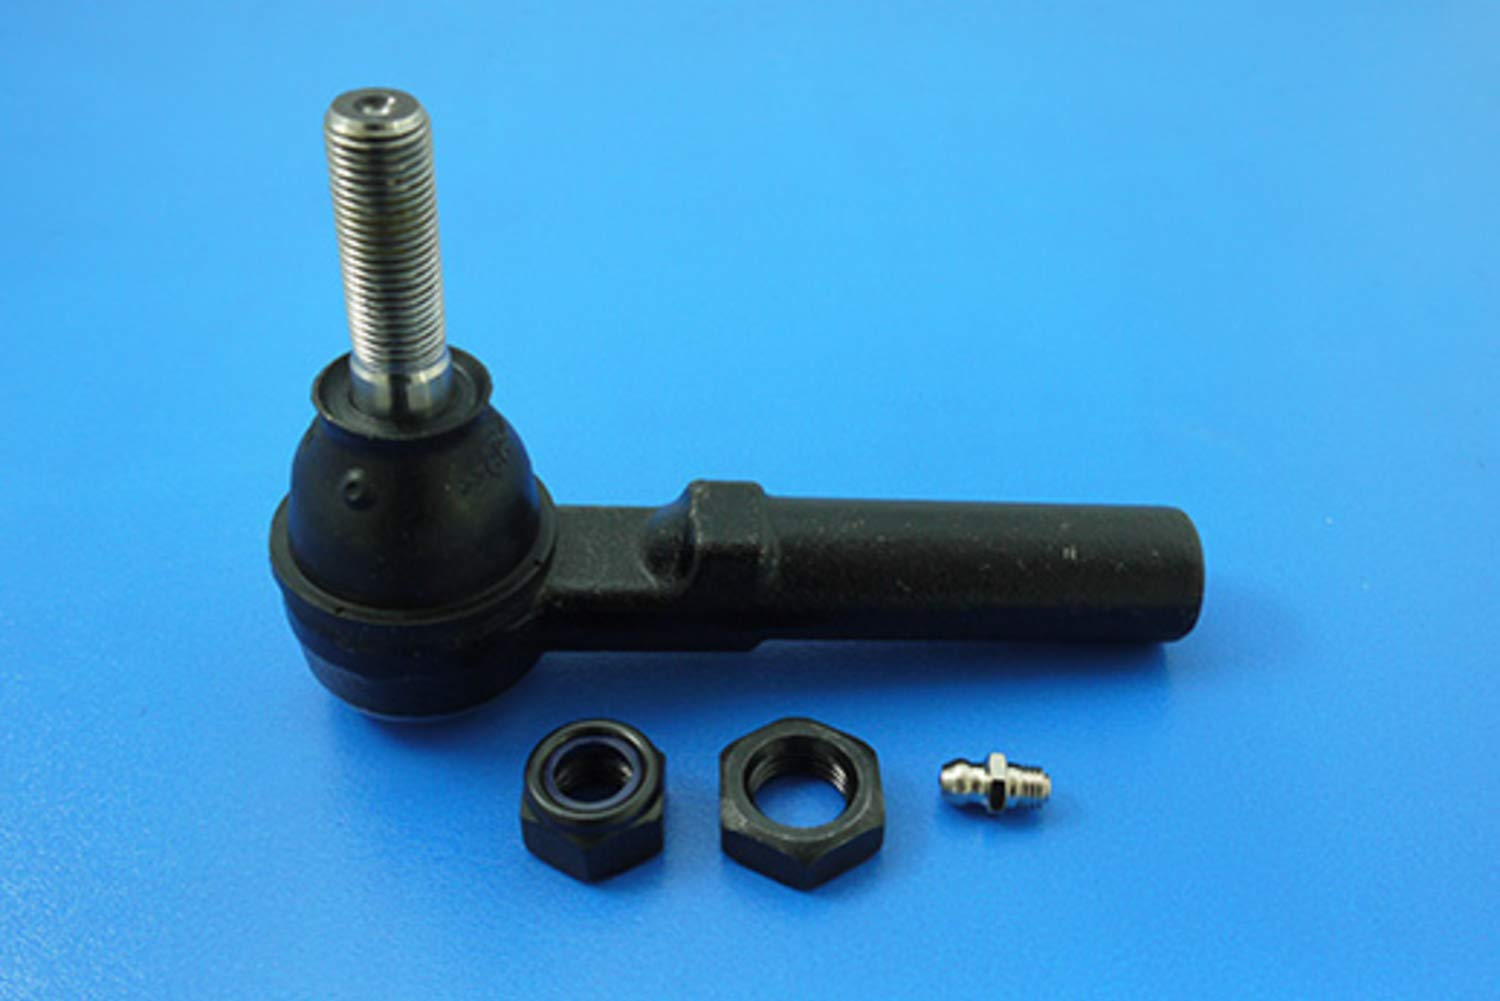 2006 Fits Chrysler PT Cruiser Front Outer Steering Tie Rod End With Five Years Warranty